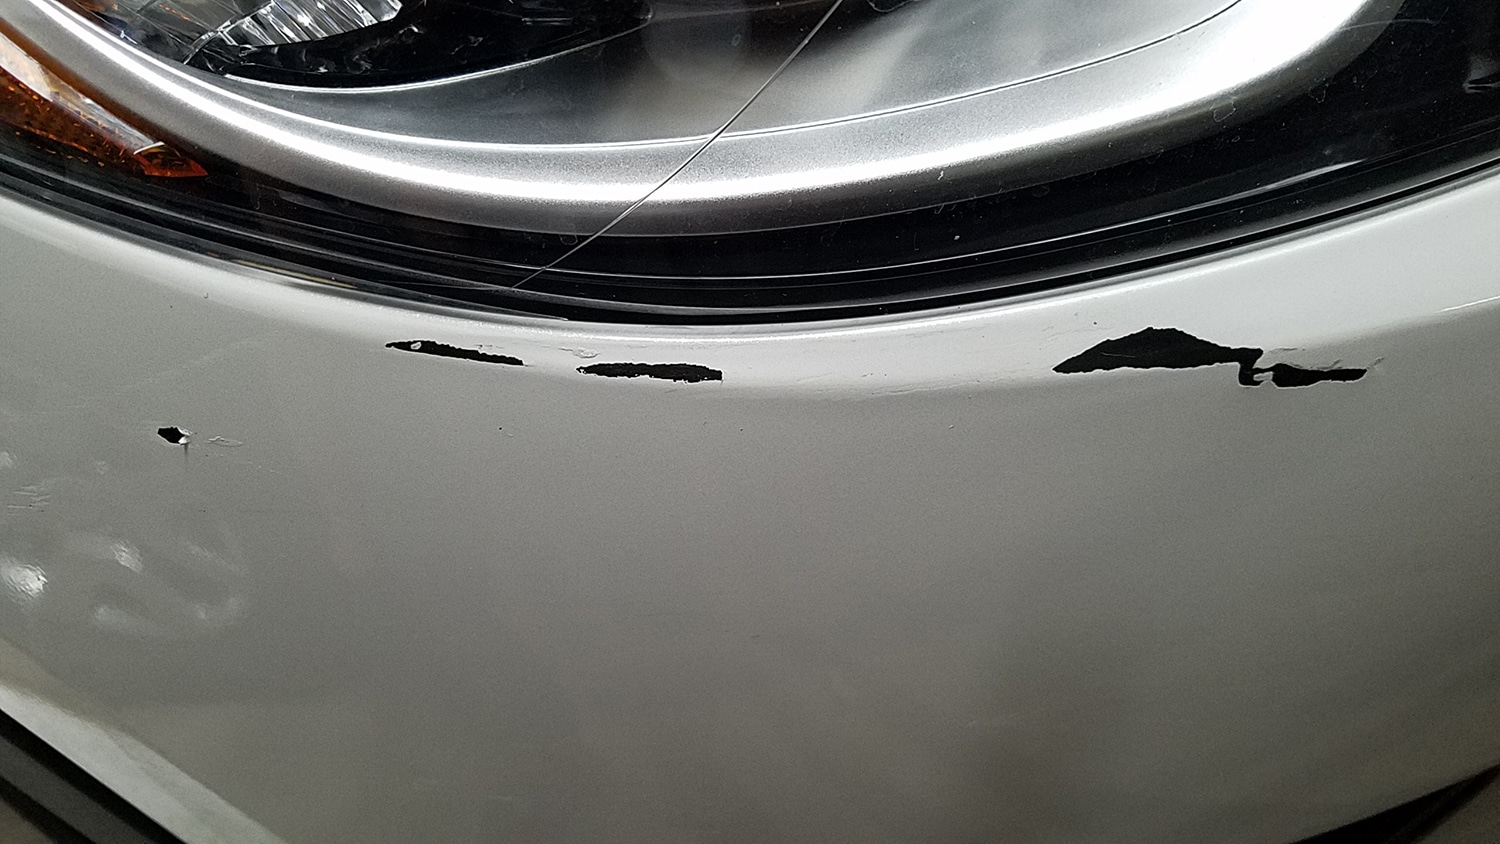 There's a closeup of a car with chipped paint by the headlight. There's a tire reflected on the car.